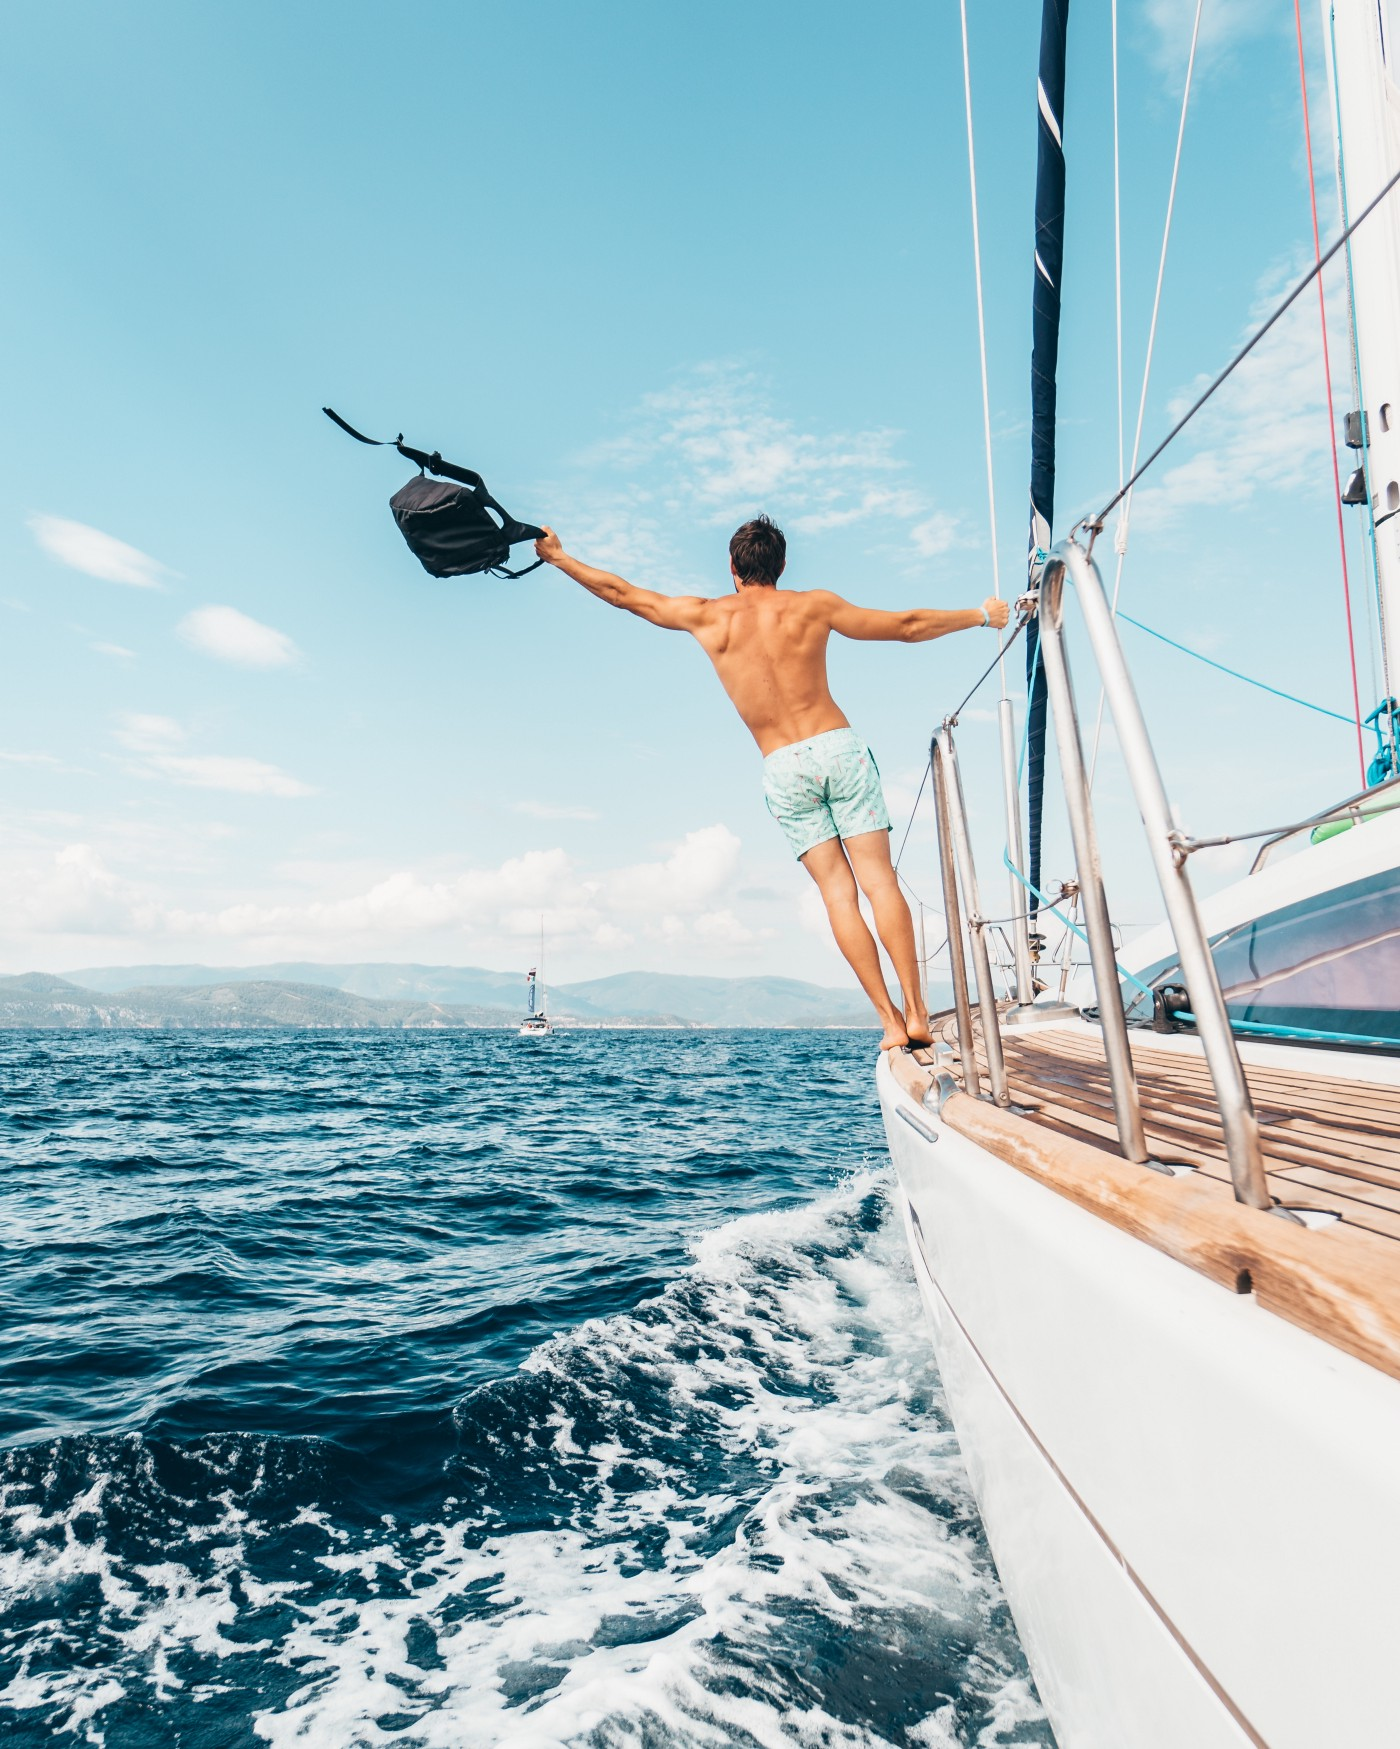 Man standing on a boat swinging his backpack out over the water